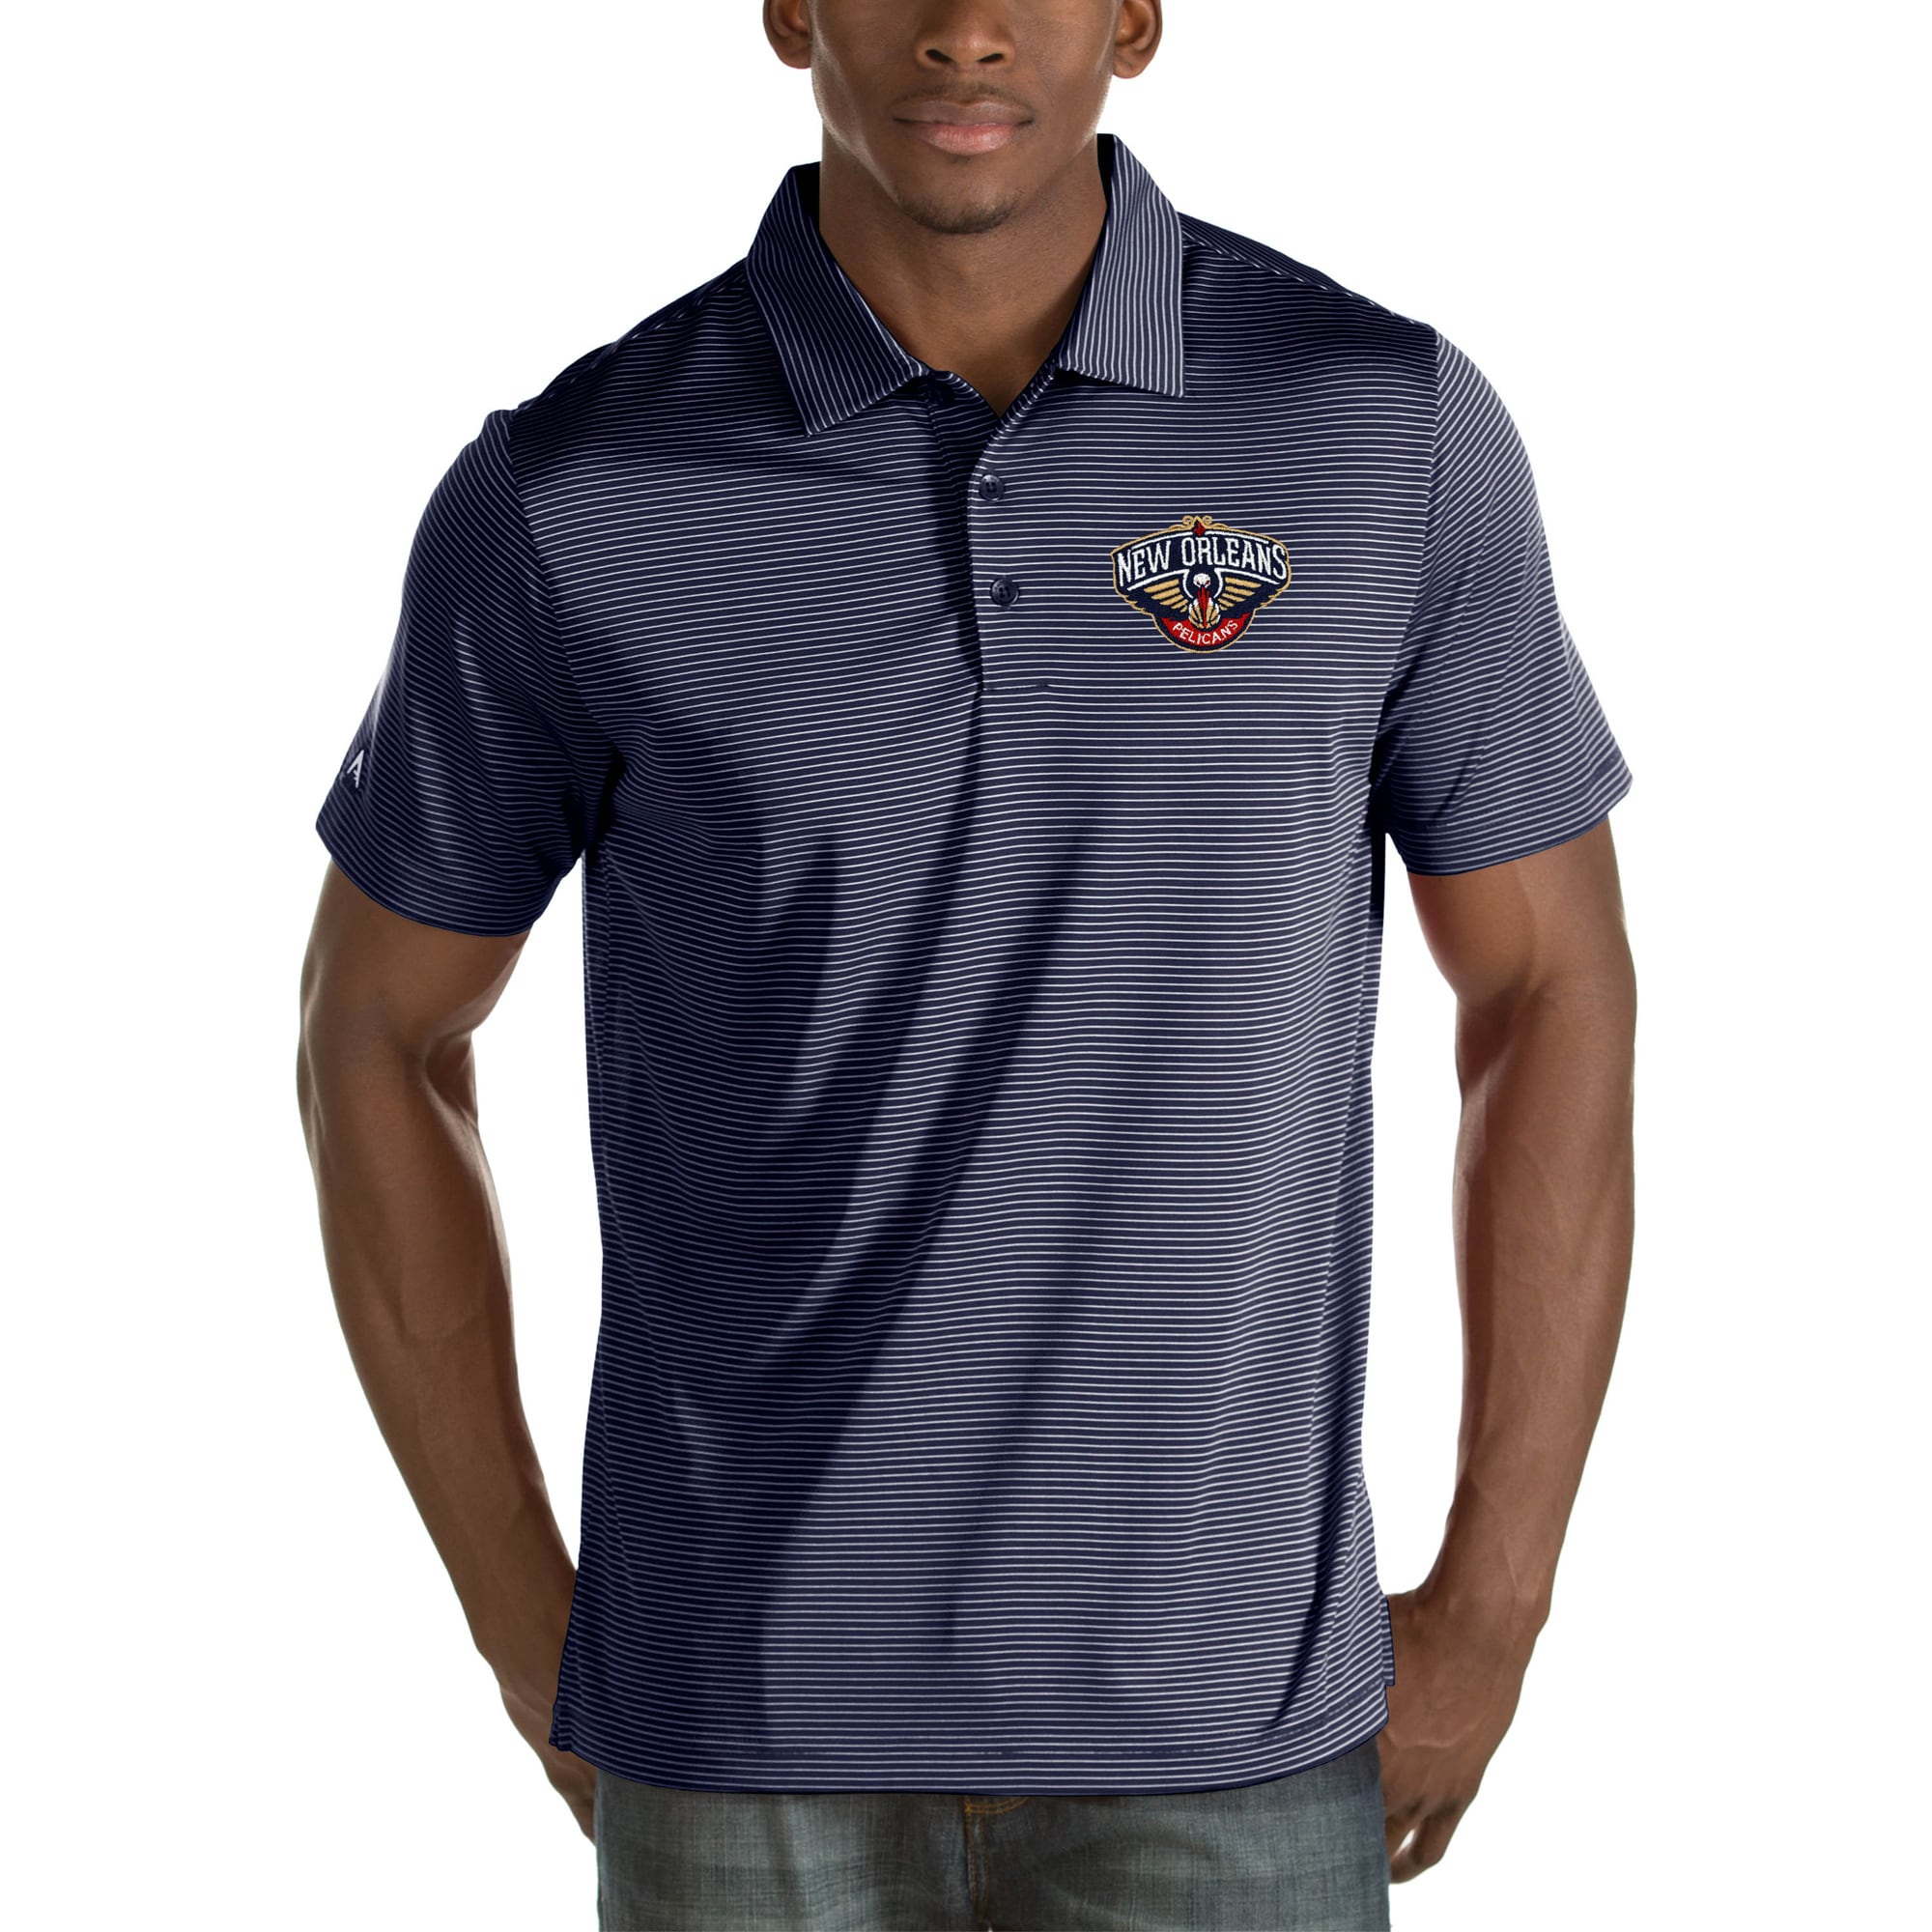 New Orleans Pelicans Antigua Quest Big & Tall Polo - Navy